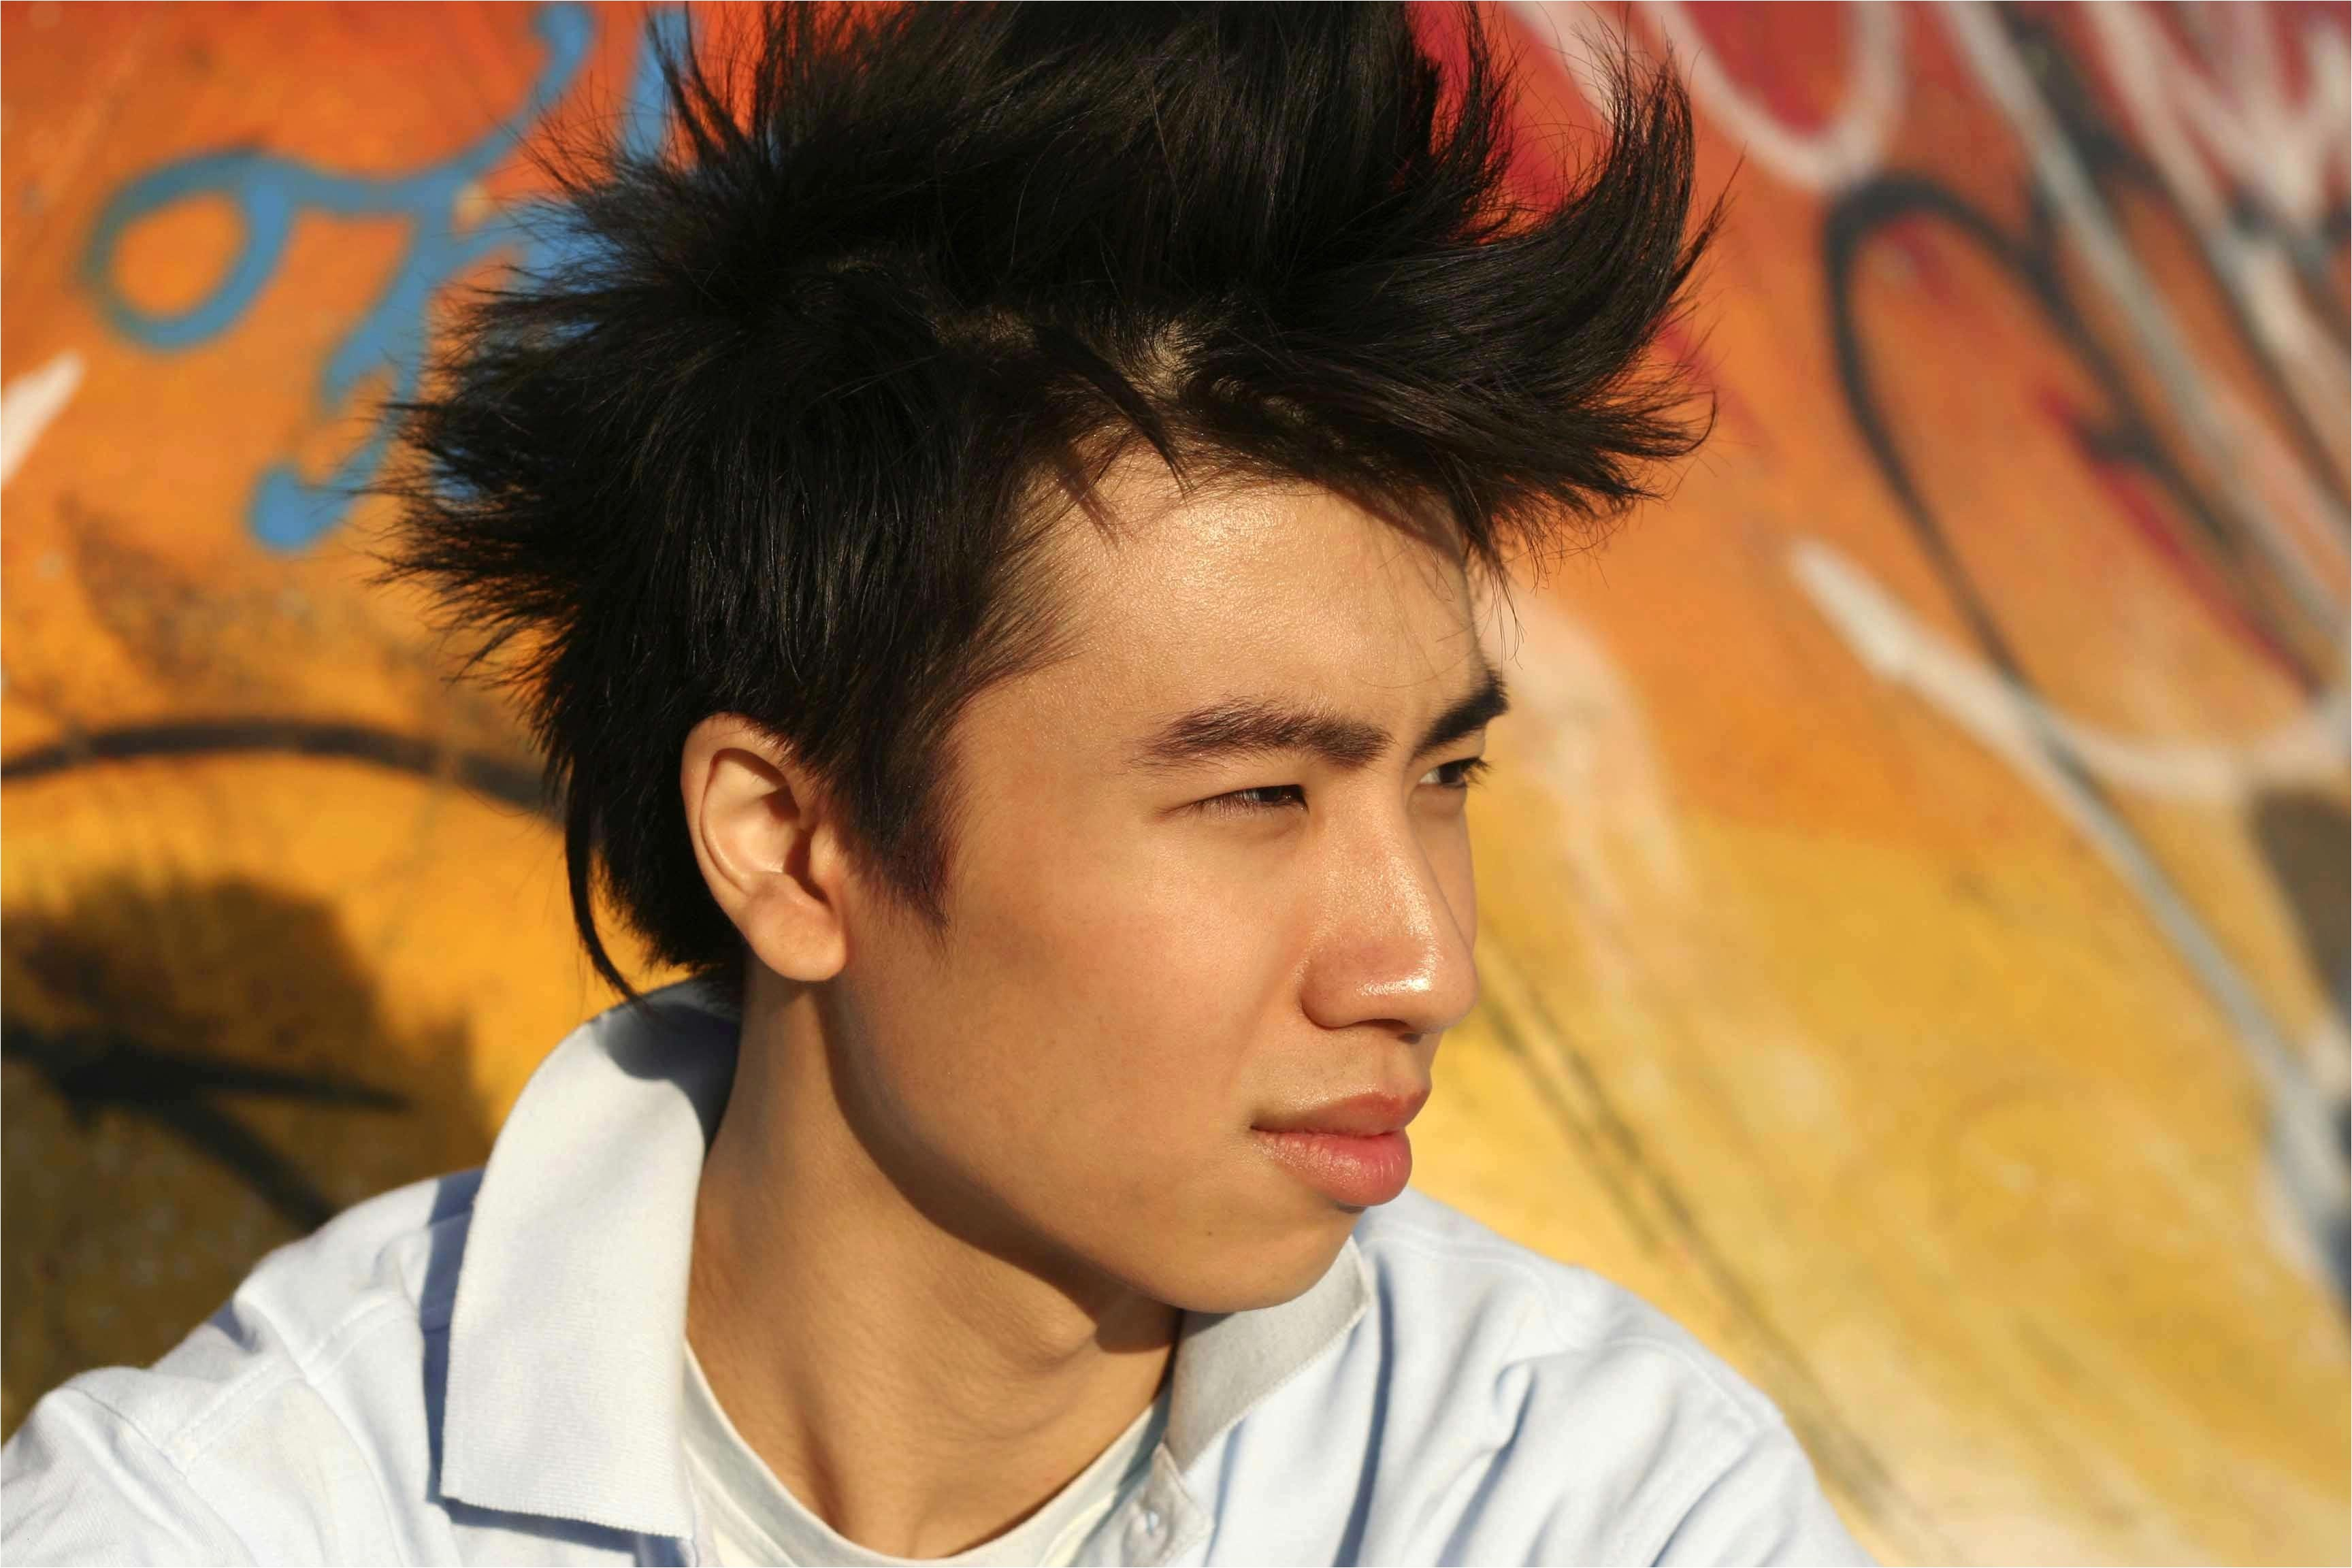 Hairstyle for Medium Hair Beautiful Remarkable Hairstyles for Men Luxury Haircuts 0d Regrowhairproducts